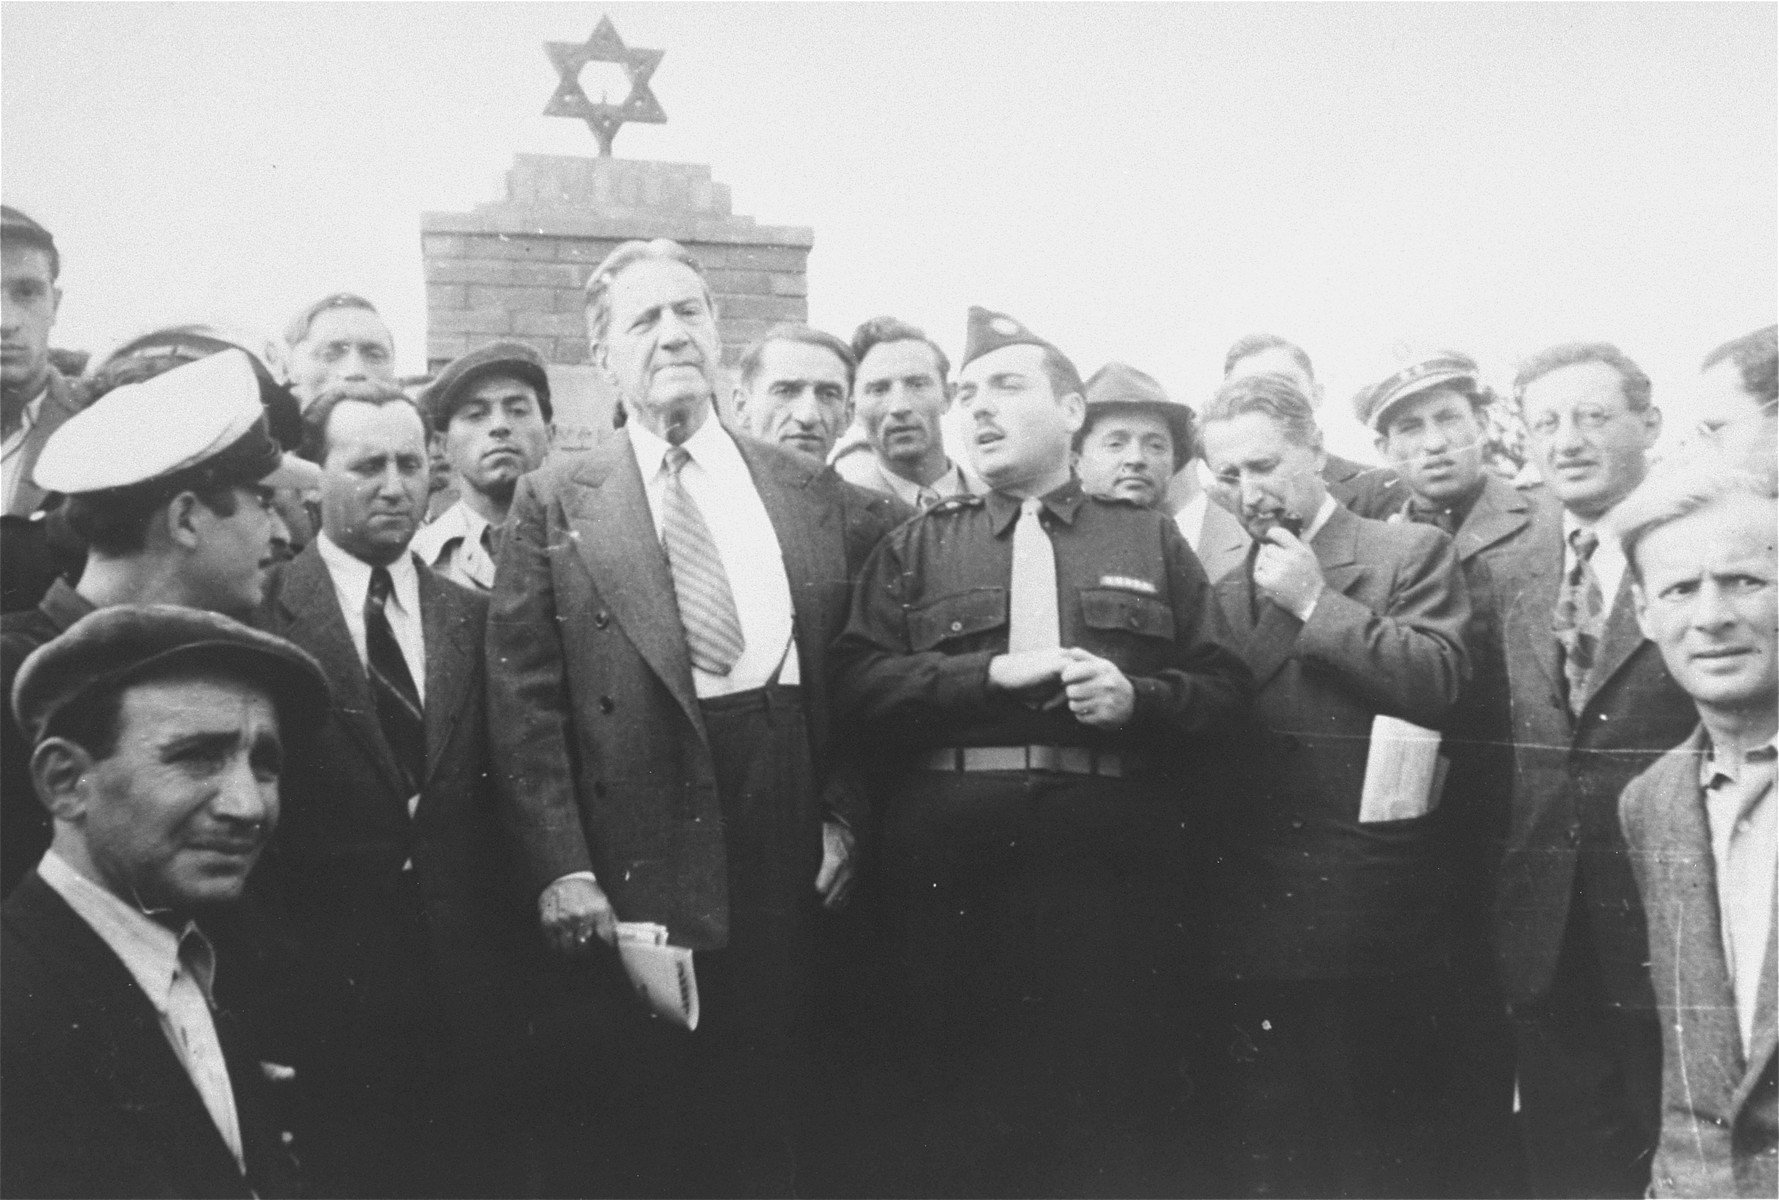 Rabbi Stephen Wise visits the Zeilsheim displaced persons camp.   Among those pictured is Abe Greenberg (far right, front).